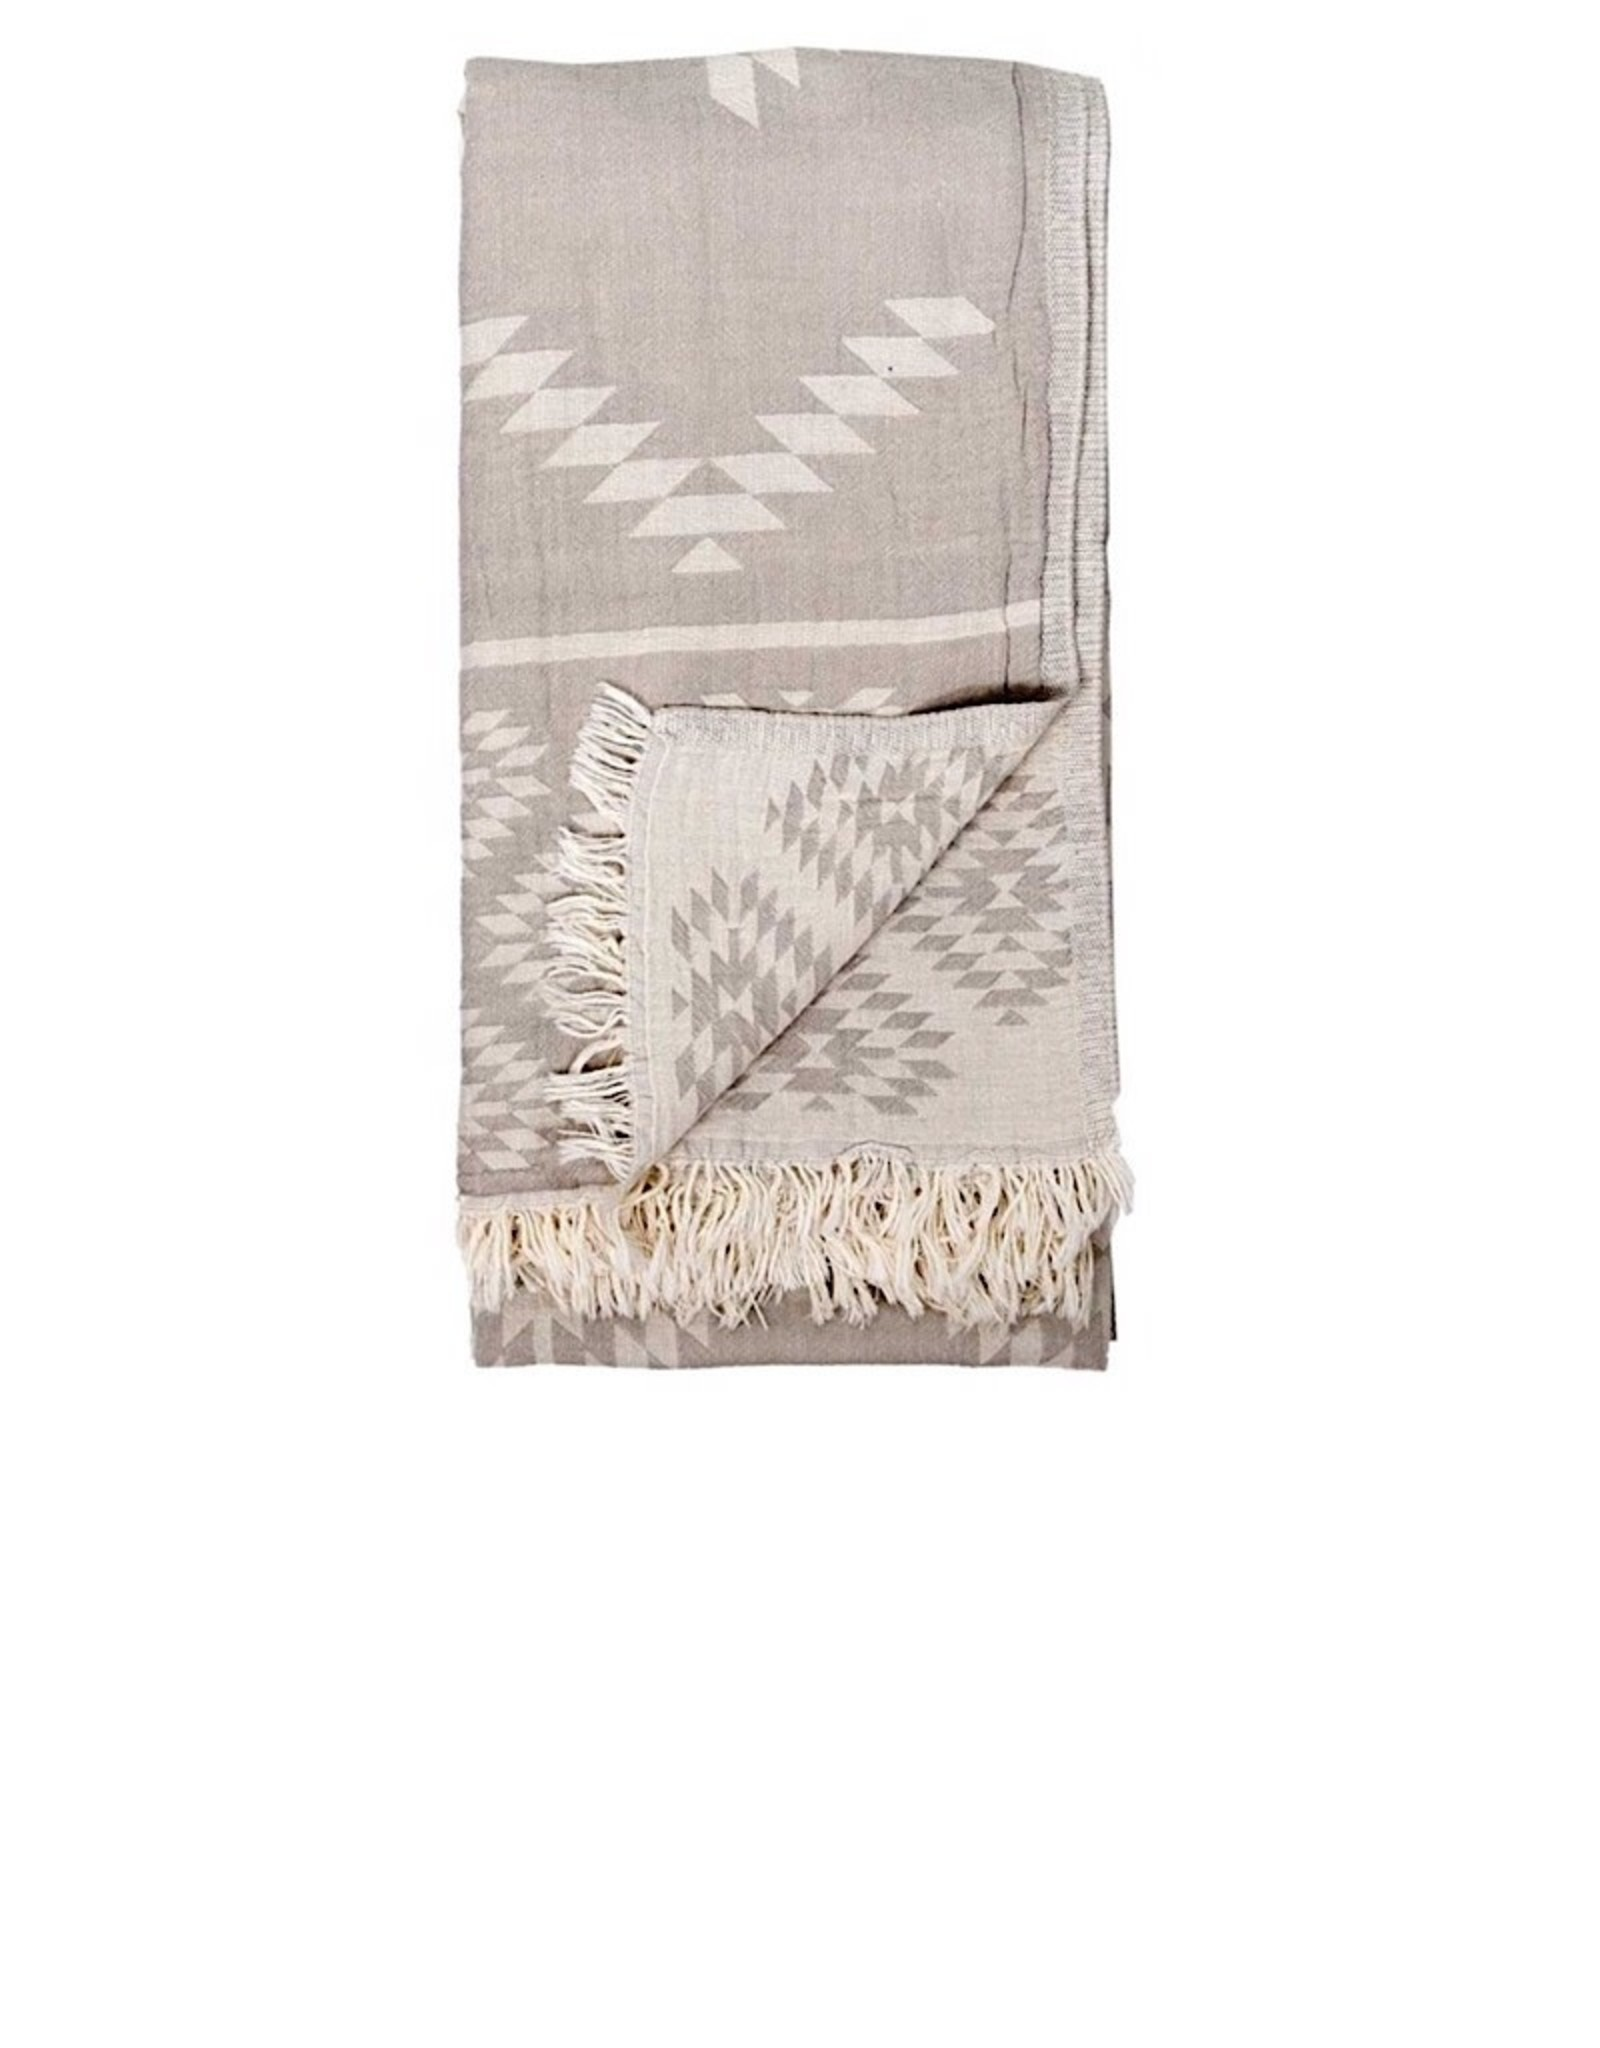 TTGE4 Turkish Towel Geometric Pebble Grey